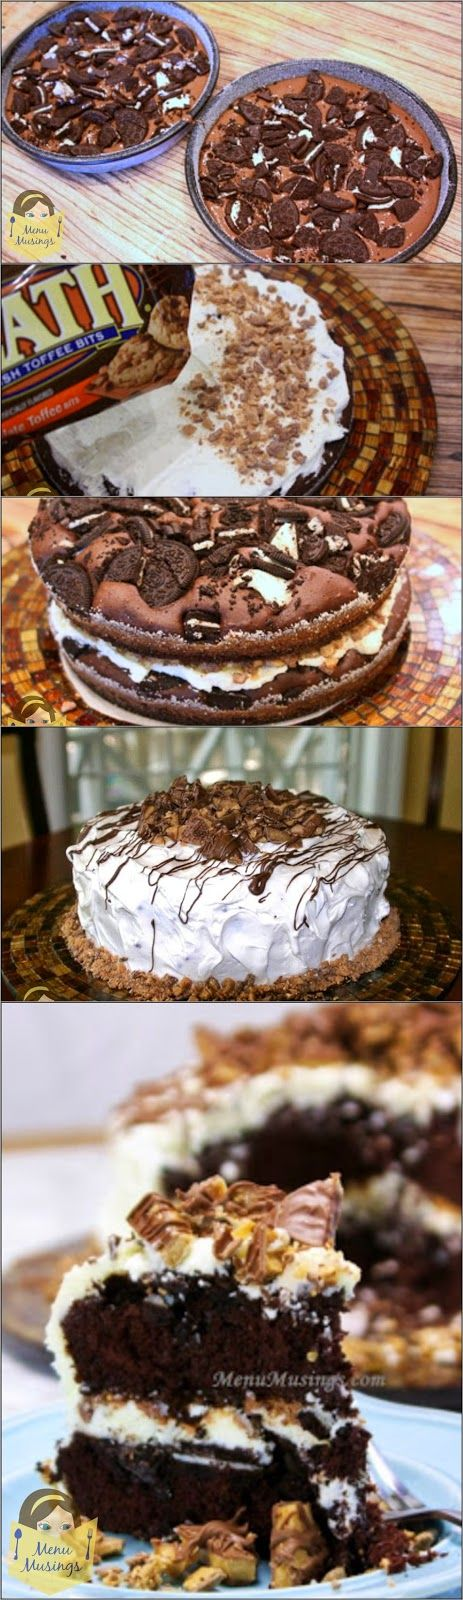 Oreo Heath Bar Cake - chocolate fudge cake with Oreos baked into batter, heath bar pieces mixed into the filling, and decorating the top.  Very decadent, but very simple to make with step-by-step photos!  Guaranteed to make someone's day!  :)